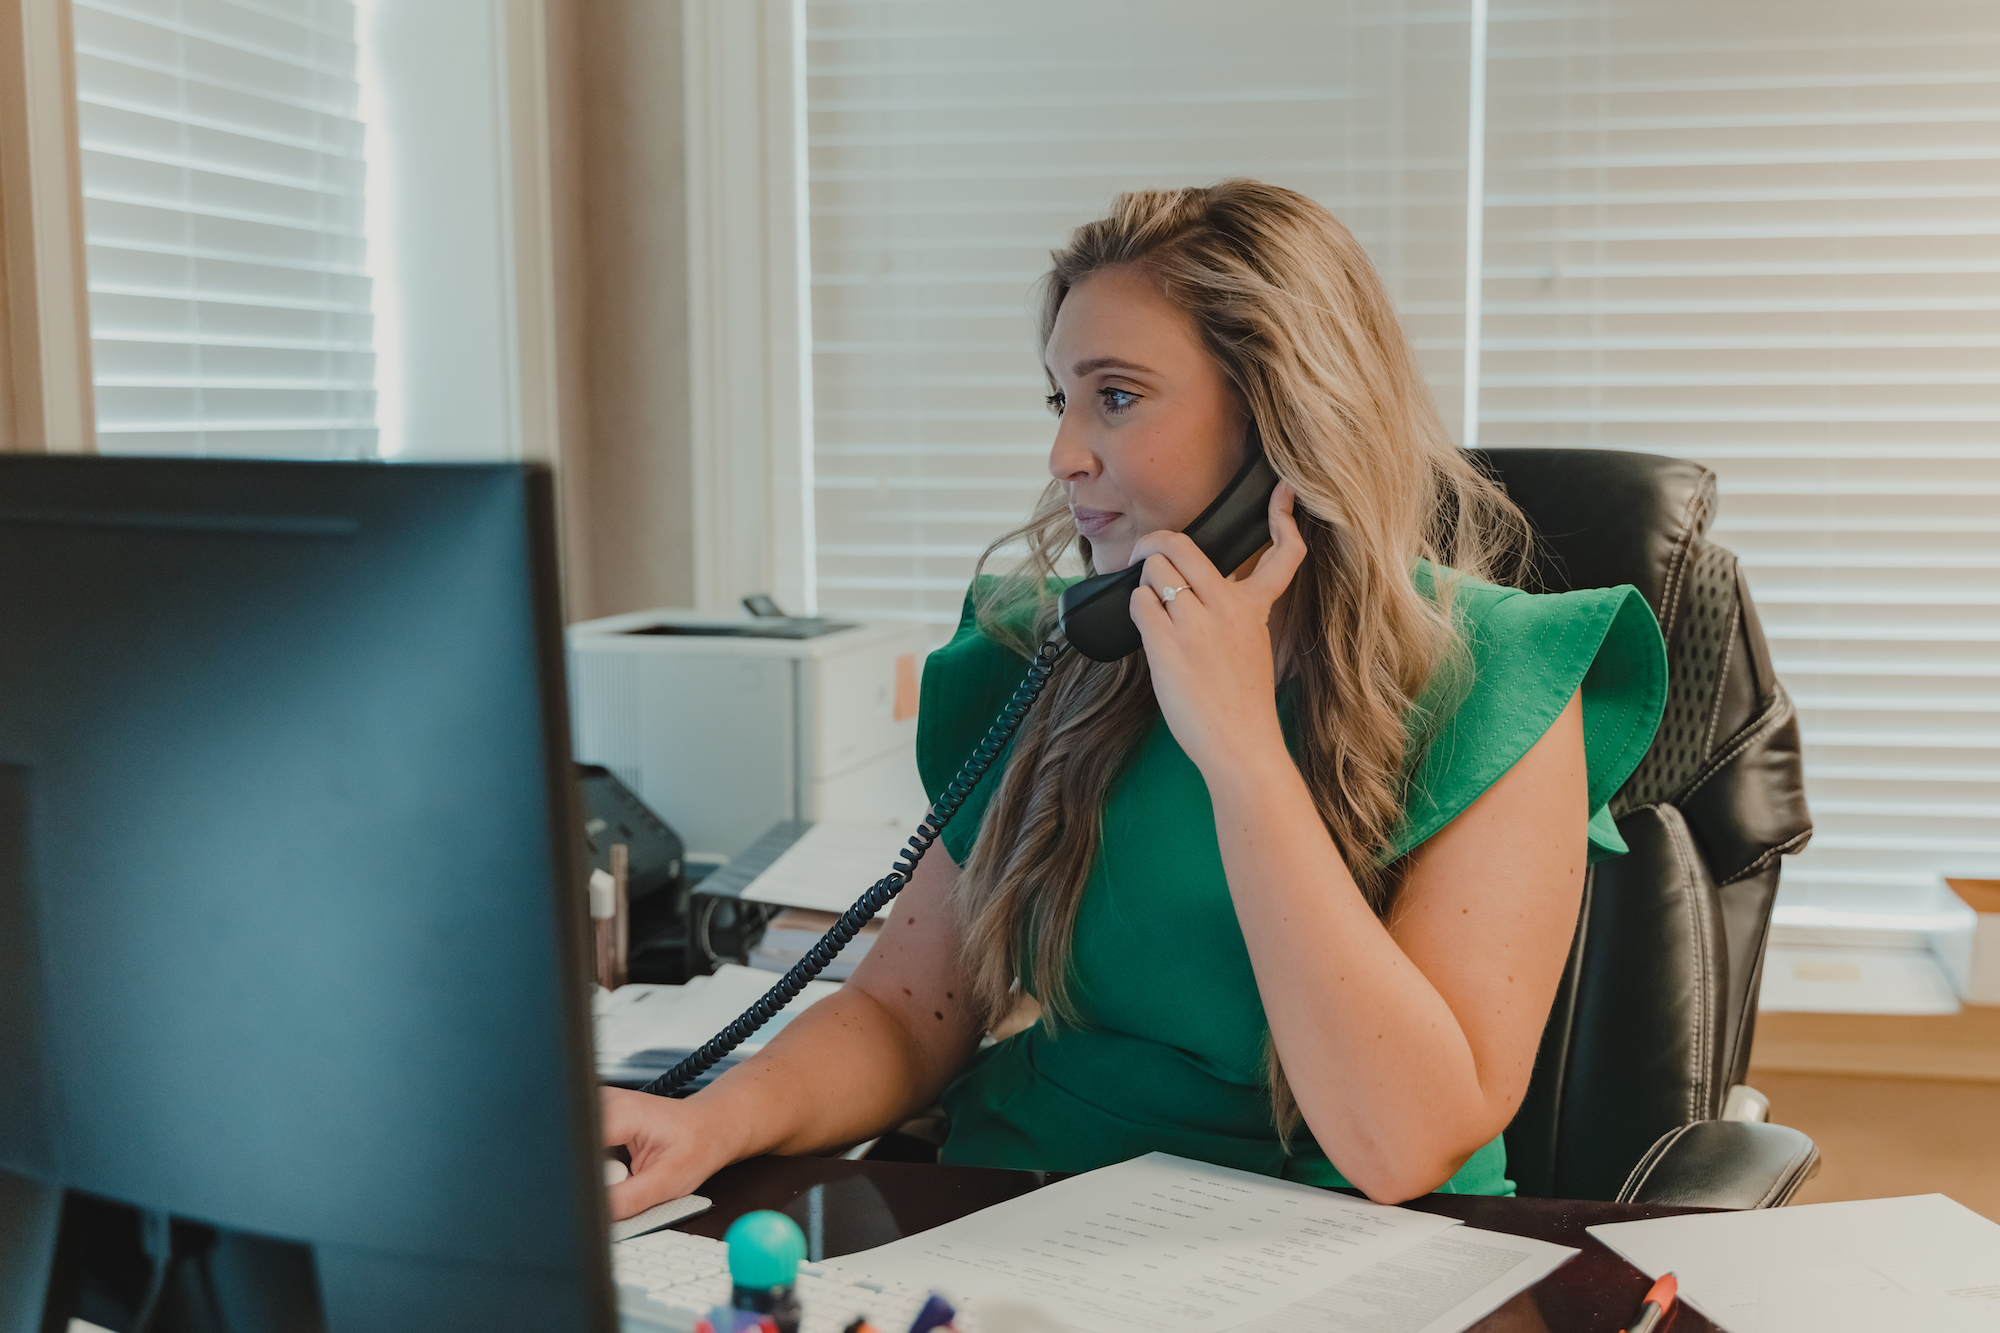 an accountant Working at Whitlock Accounting Services in Pigeon Forge Tennessee